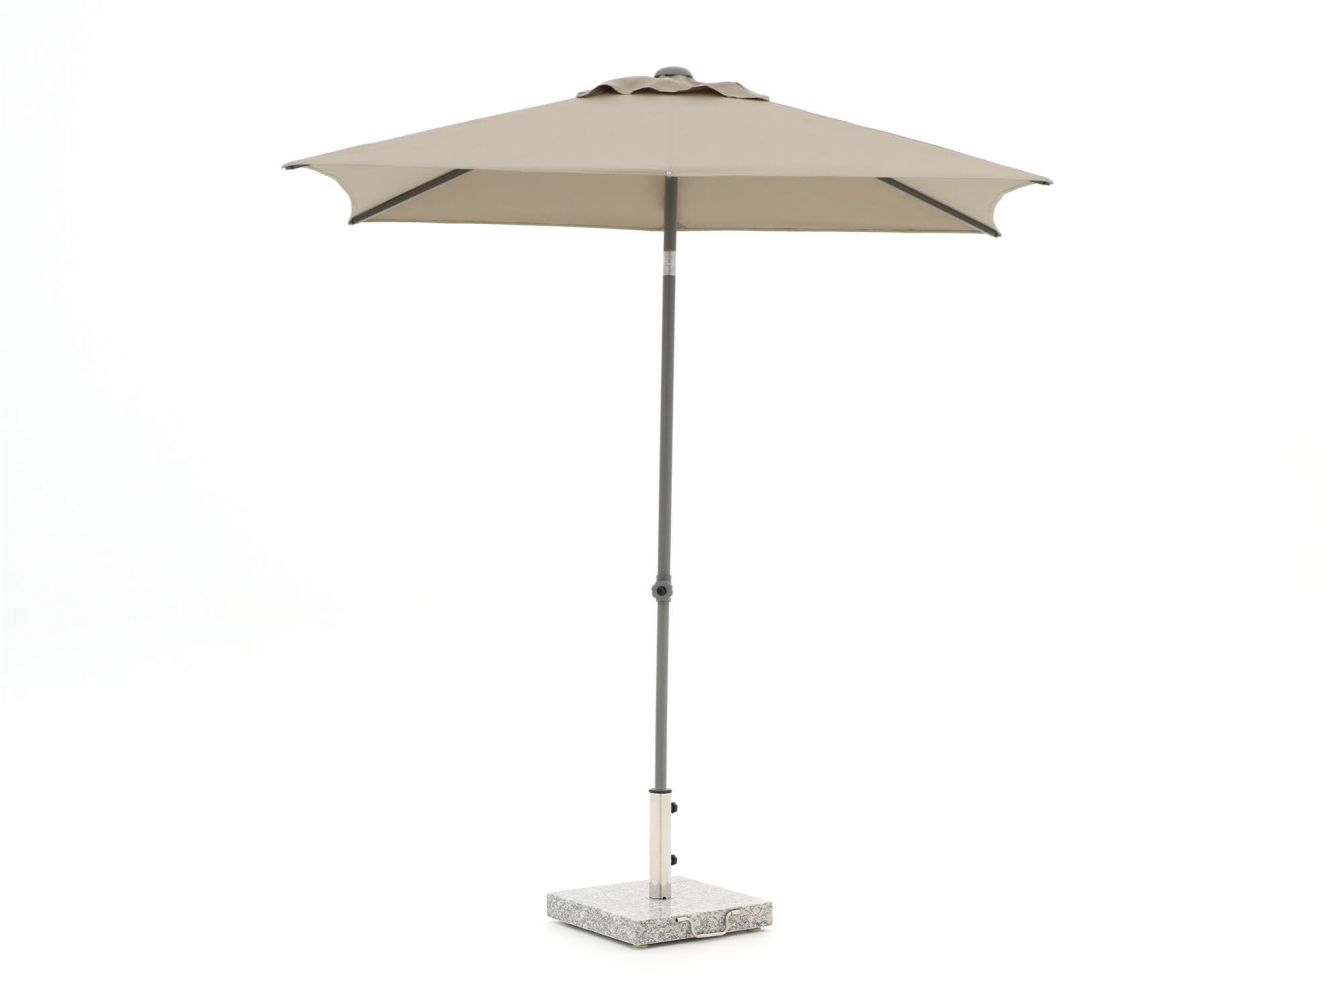 Shadowline Push-up parasol 210x150cm